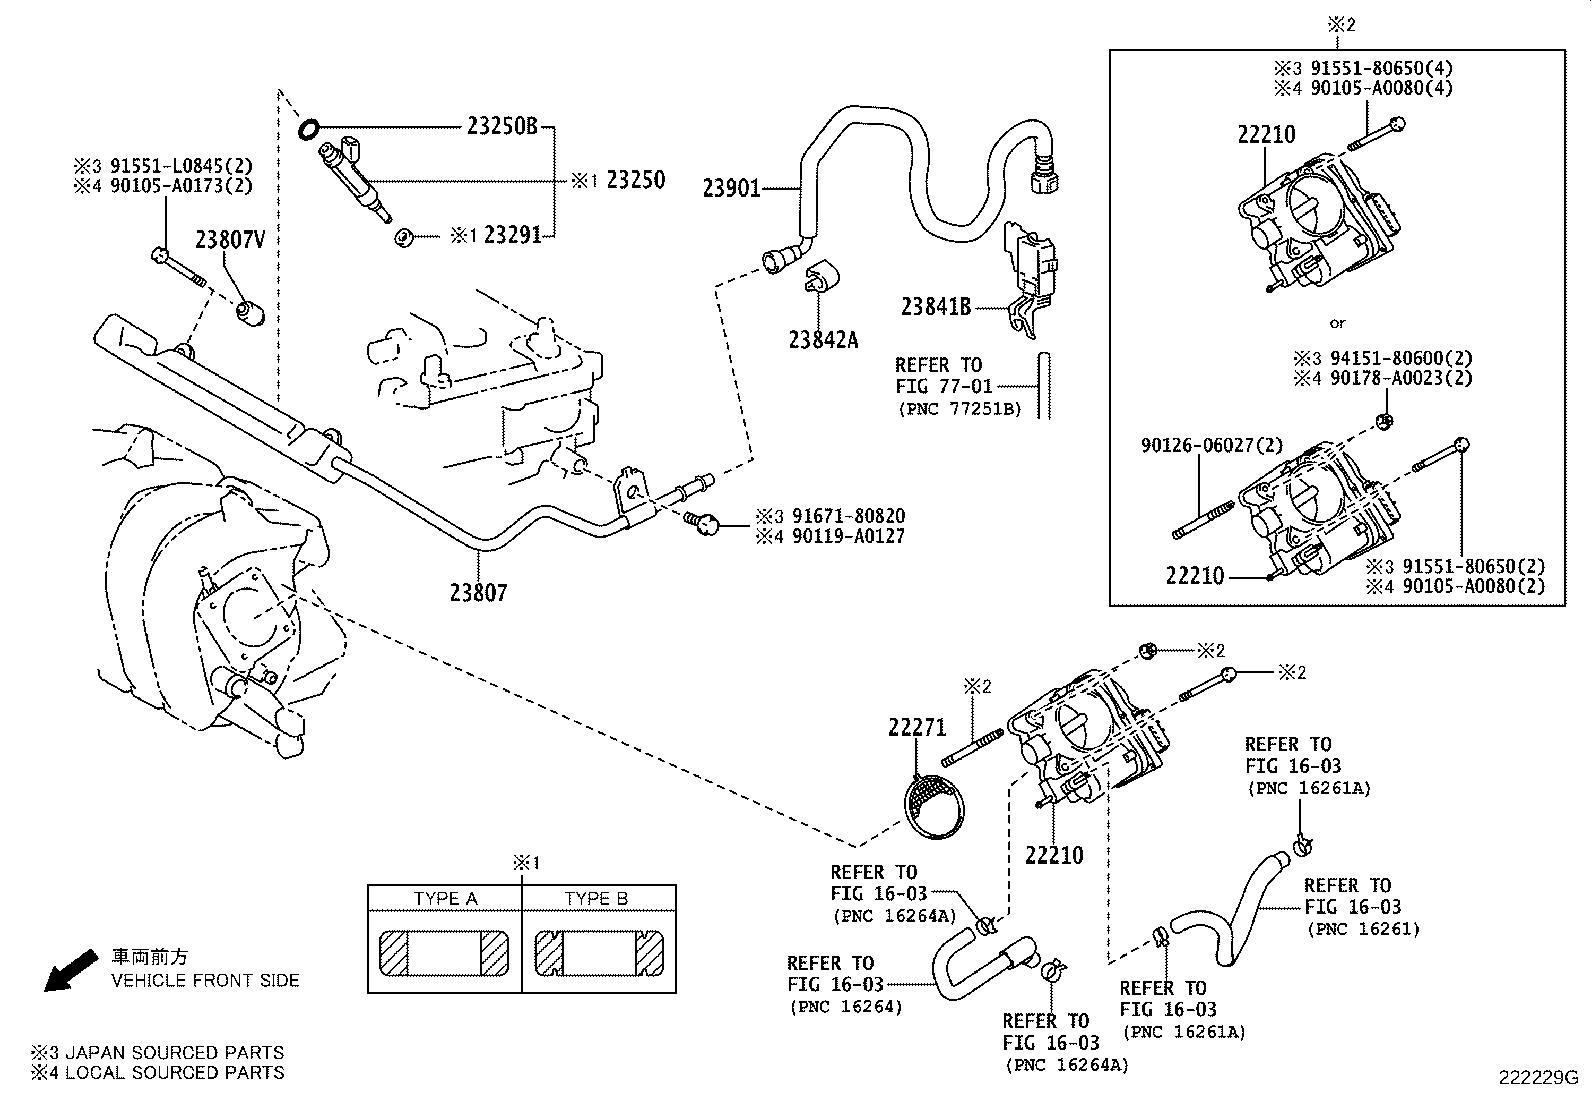 2013 Toyota Corolla Injector assembly, fuel